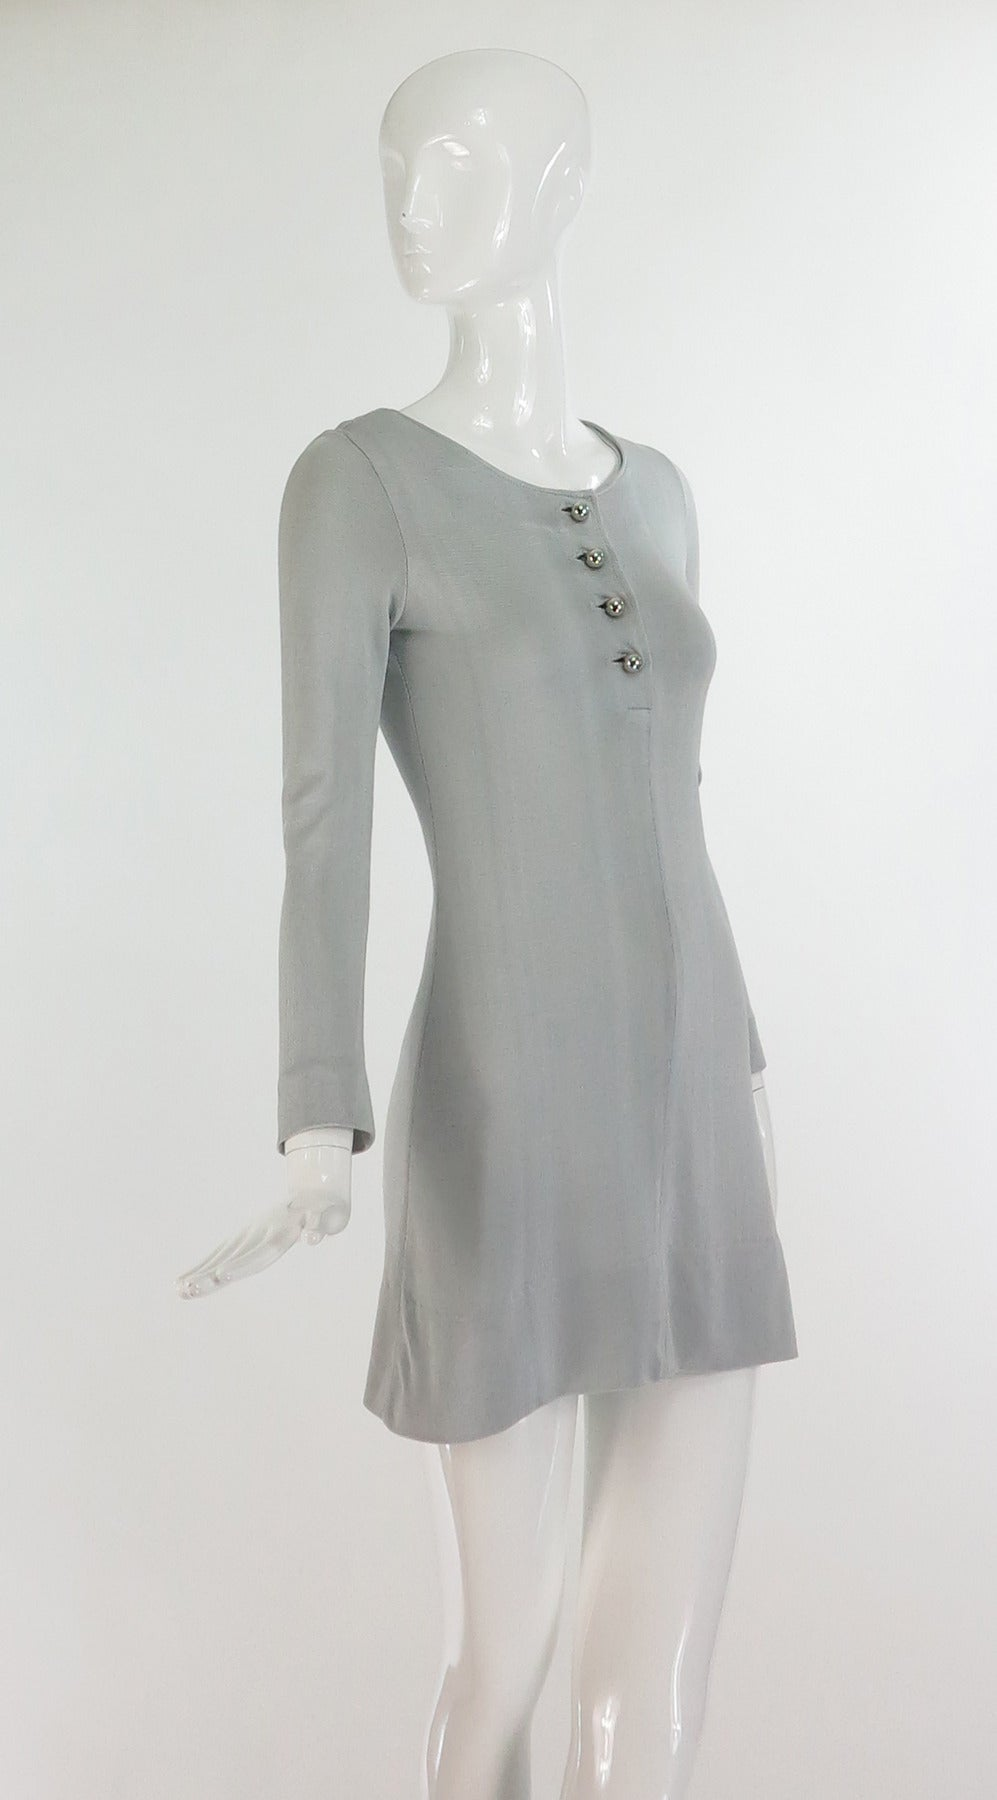 Paraphernalia by Betsey Johnson 1960s silver metallic knit mini dress 2